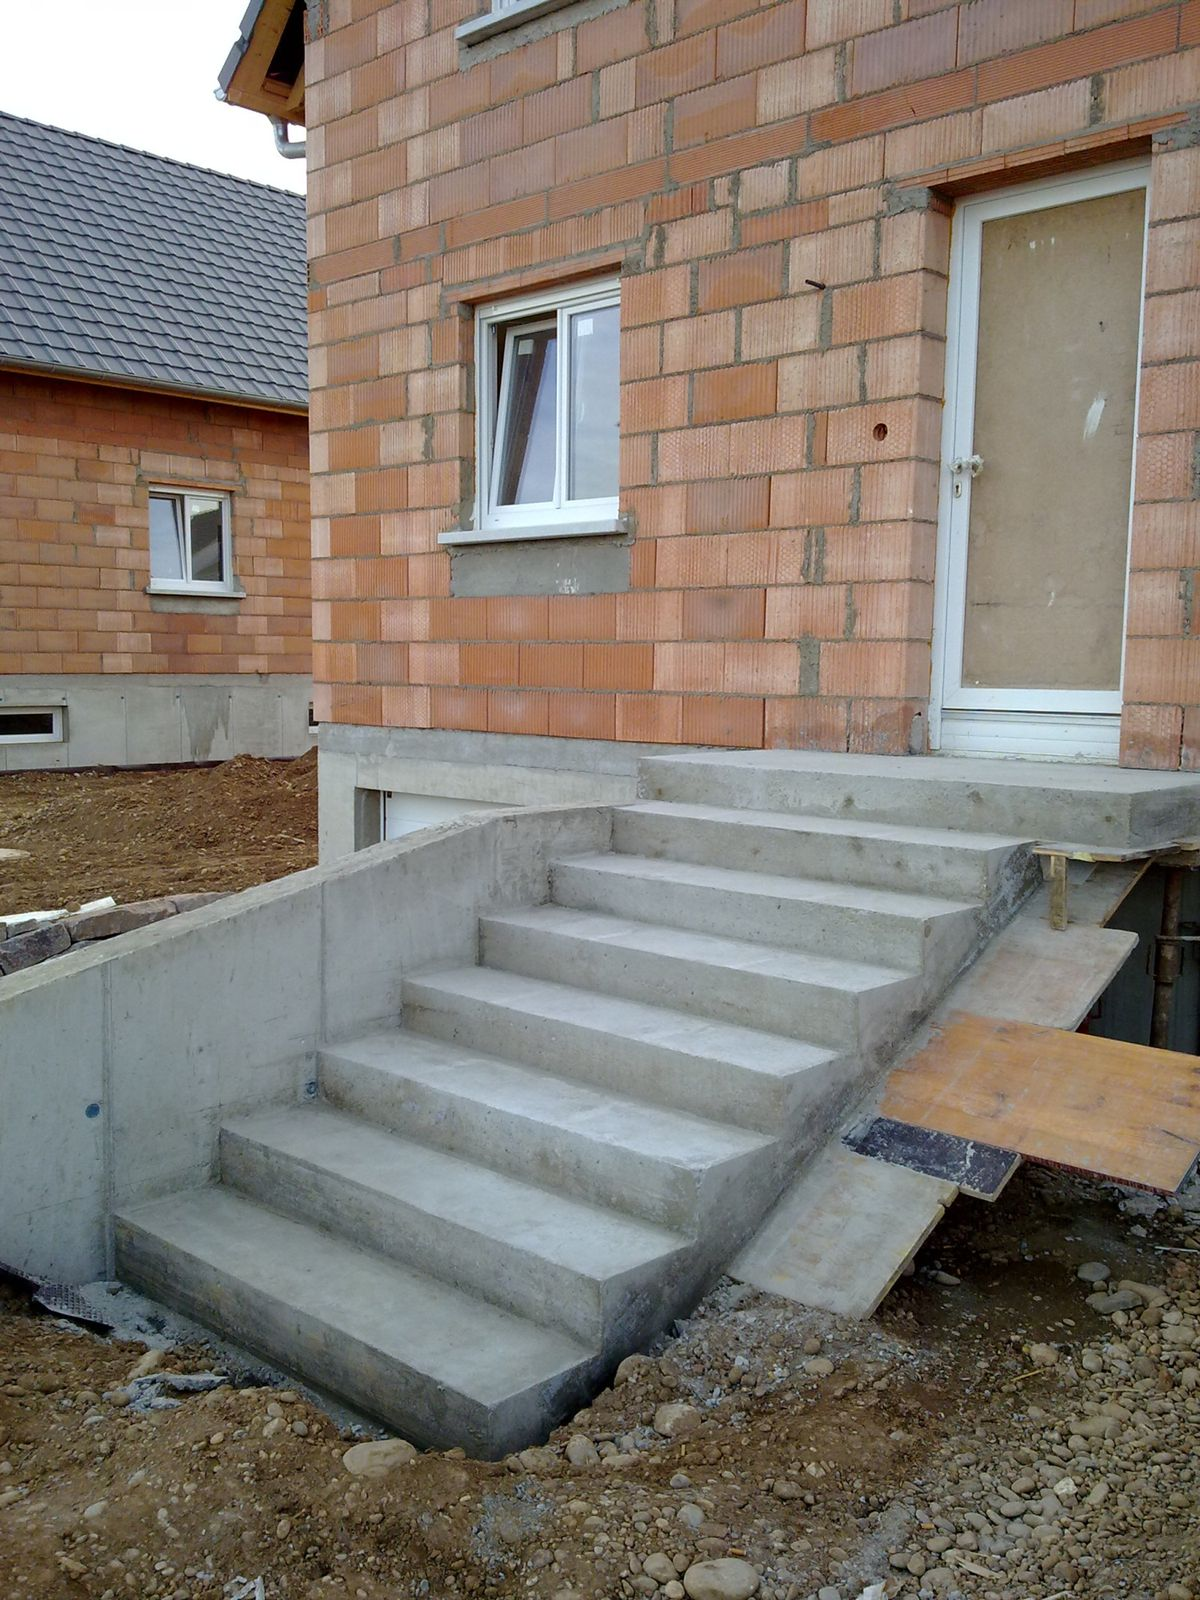 decoffrage escalier exterieur j206 la construction de With escalier de maison exterieur